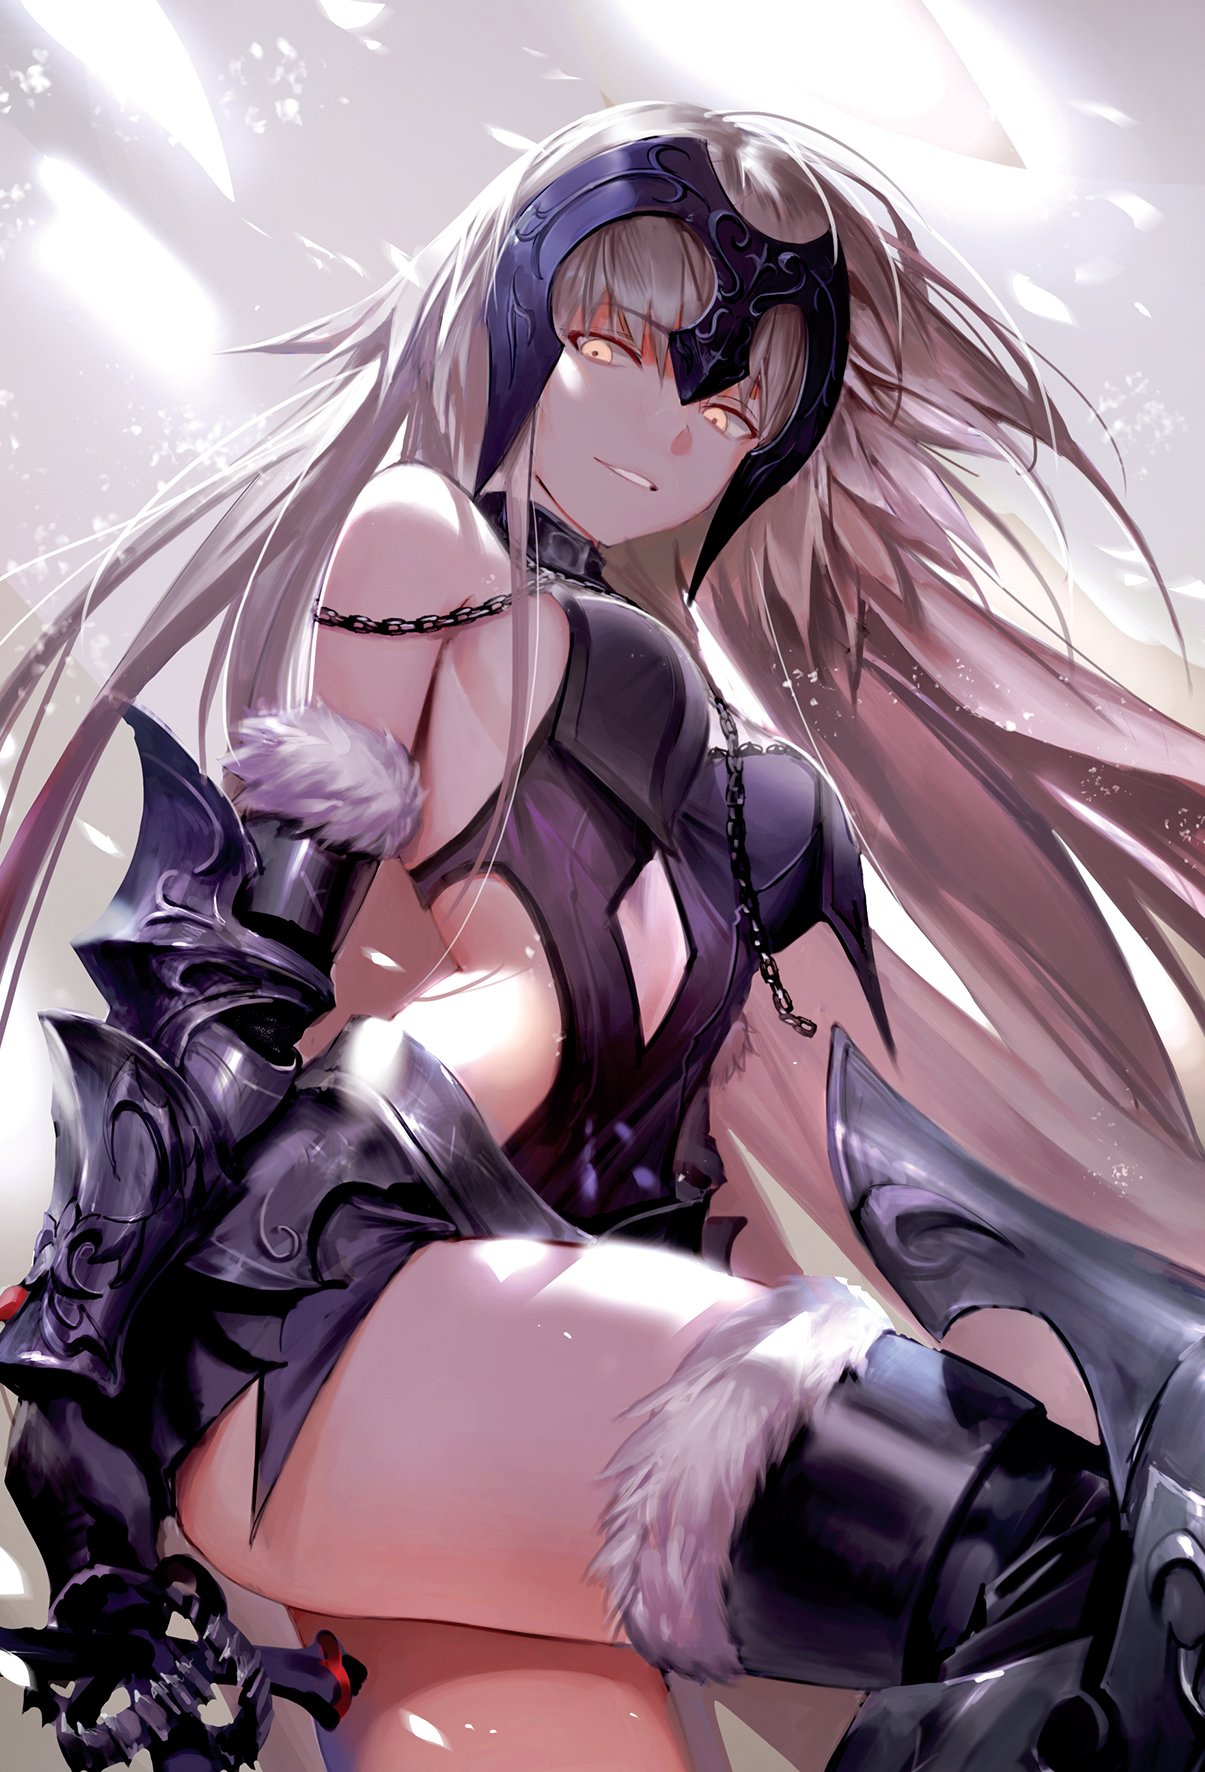 1girl armor armored_leotard bangs bare_shoulders breasts cape center_opening choker cowboy_shot eyebrows_visible_through_hair fate/grand_order fate_(series) faulds fur_trim gauntlets grey_background headpiece highres jeanne_d'arc_(alter)_(fate) jeanne_d'arc_(fate)_(all) large_breasts long_hair shycocoa silver_hair smile sword thigh-highs tsurime two-tone_background very_long_hair weapon yellow_eyes